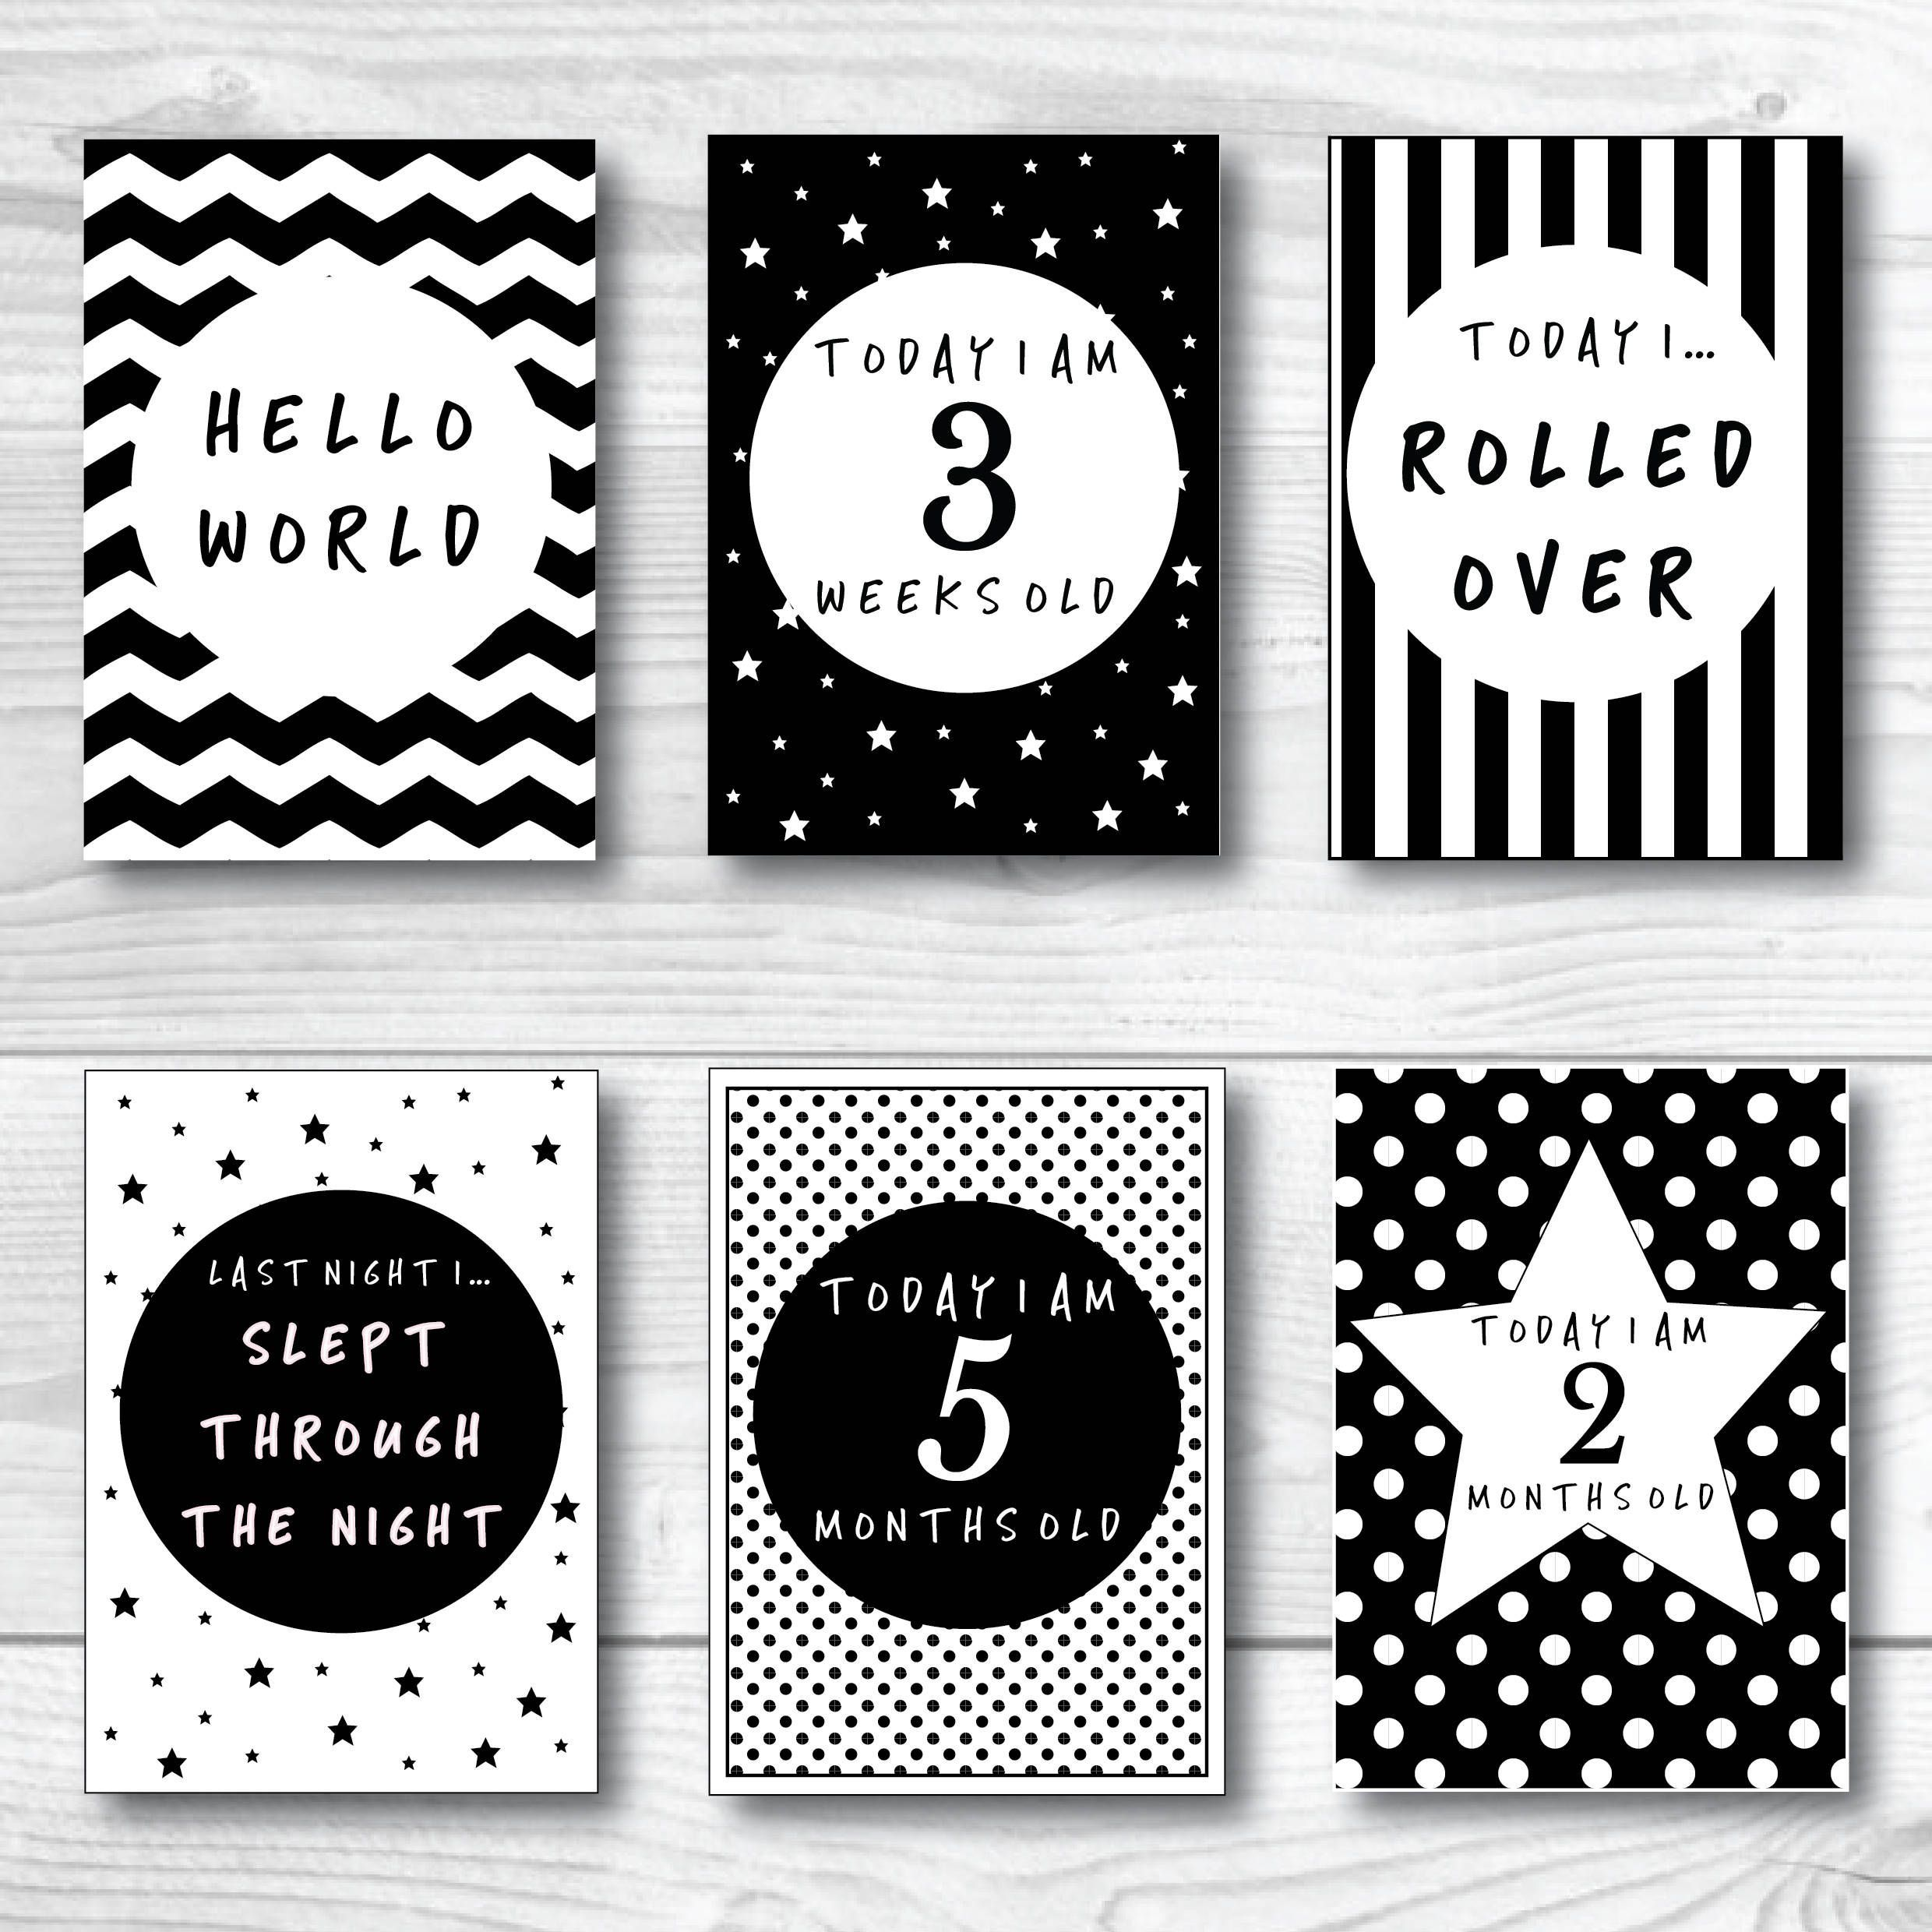 002 Unusual Baby Shower Card Printable Black And White High Resolution Full